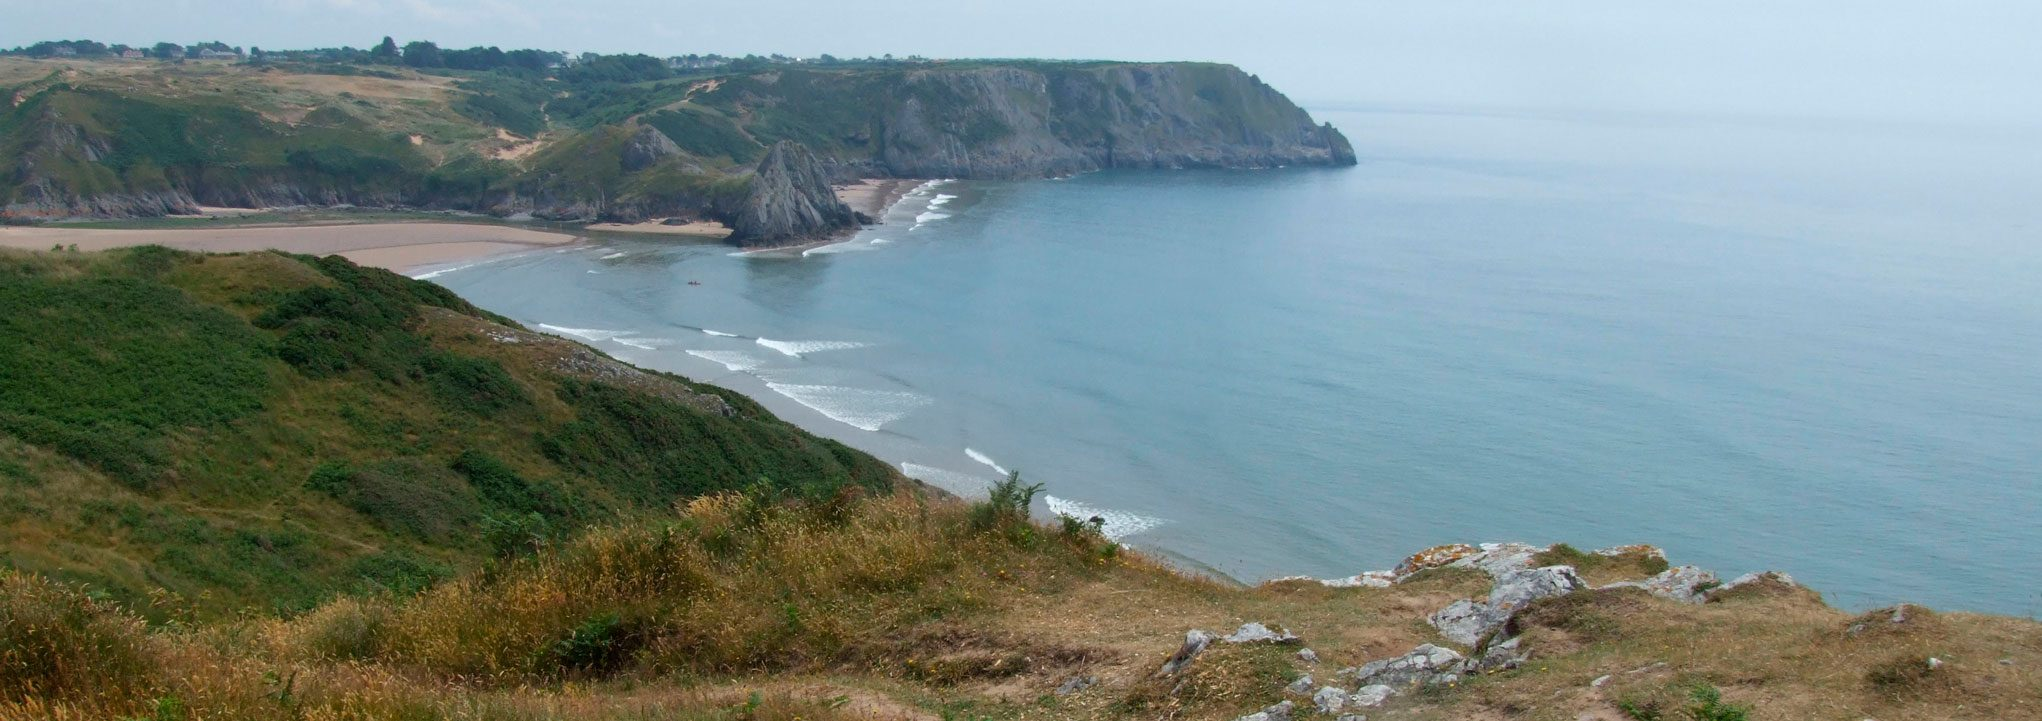 Gower-commons-three-cliffs-bay